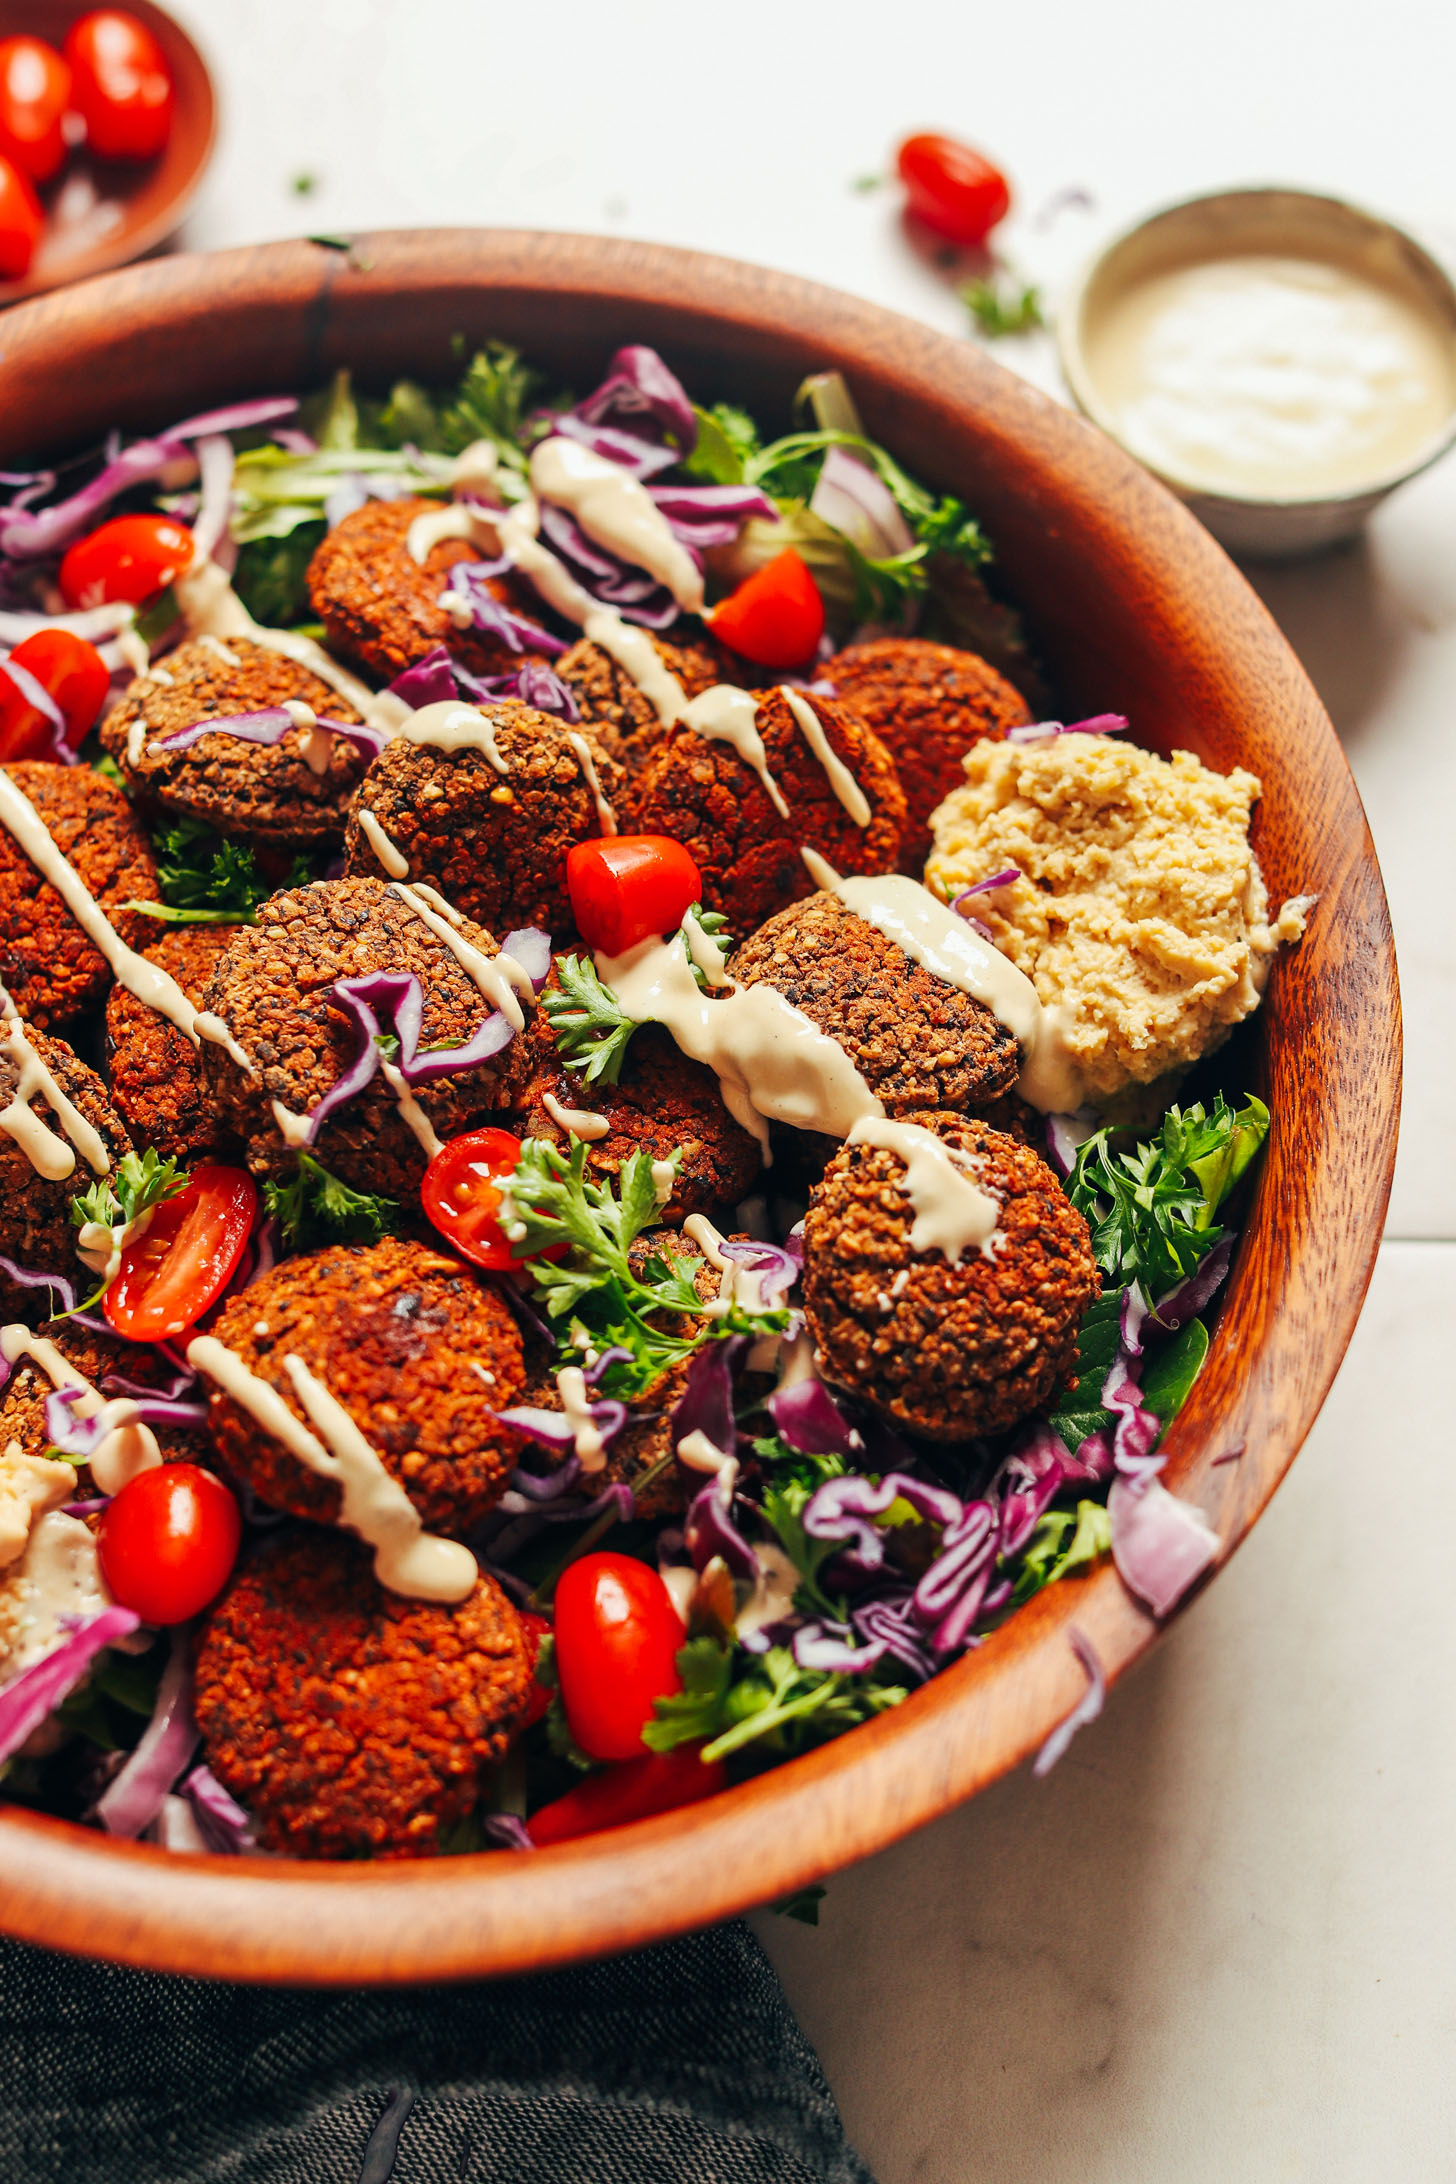 DELICIOUS Black Bean Quinoa Falafel! 10 wholesome ingredients, BIG flavor, so satisfying #vegan #glutenfree #falafel #plantbased #recipe #minimalistbaker